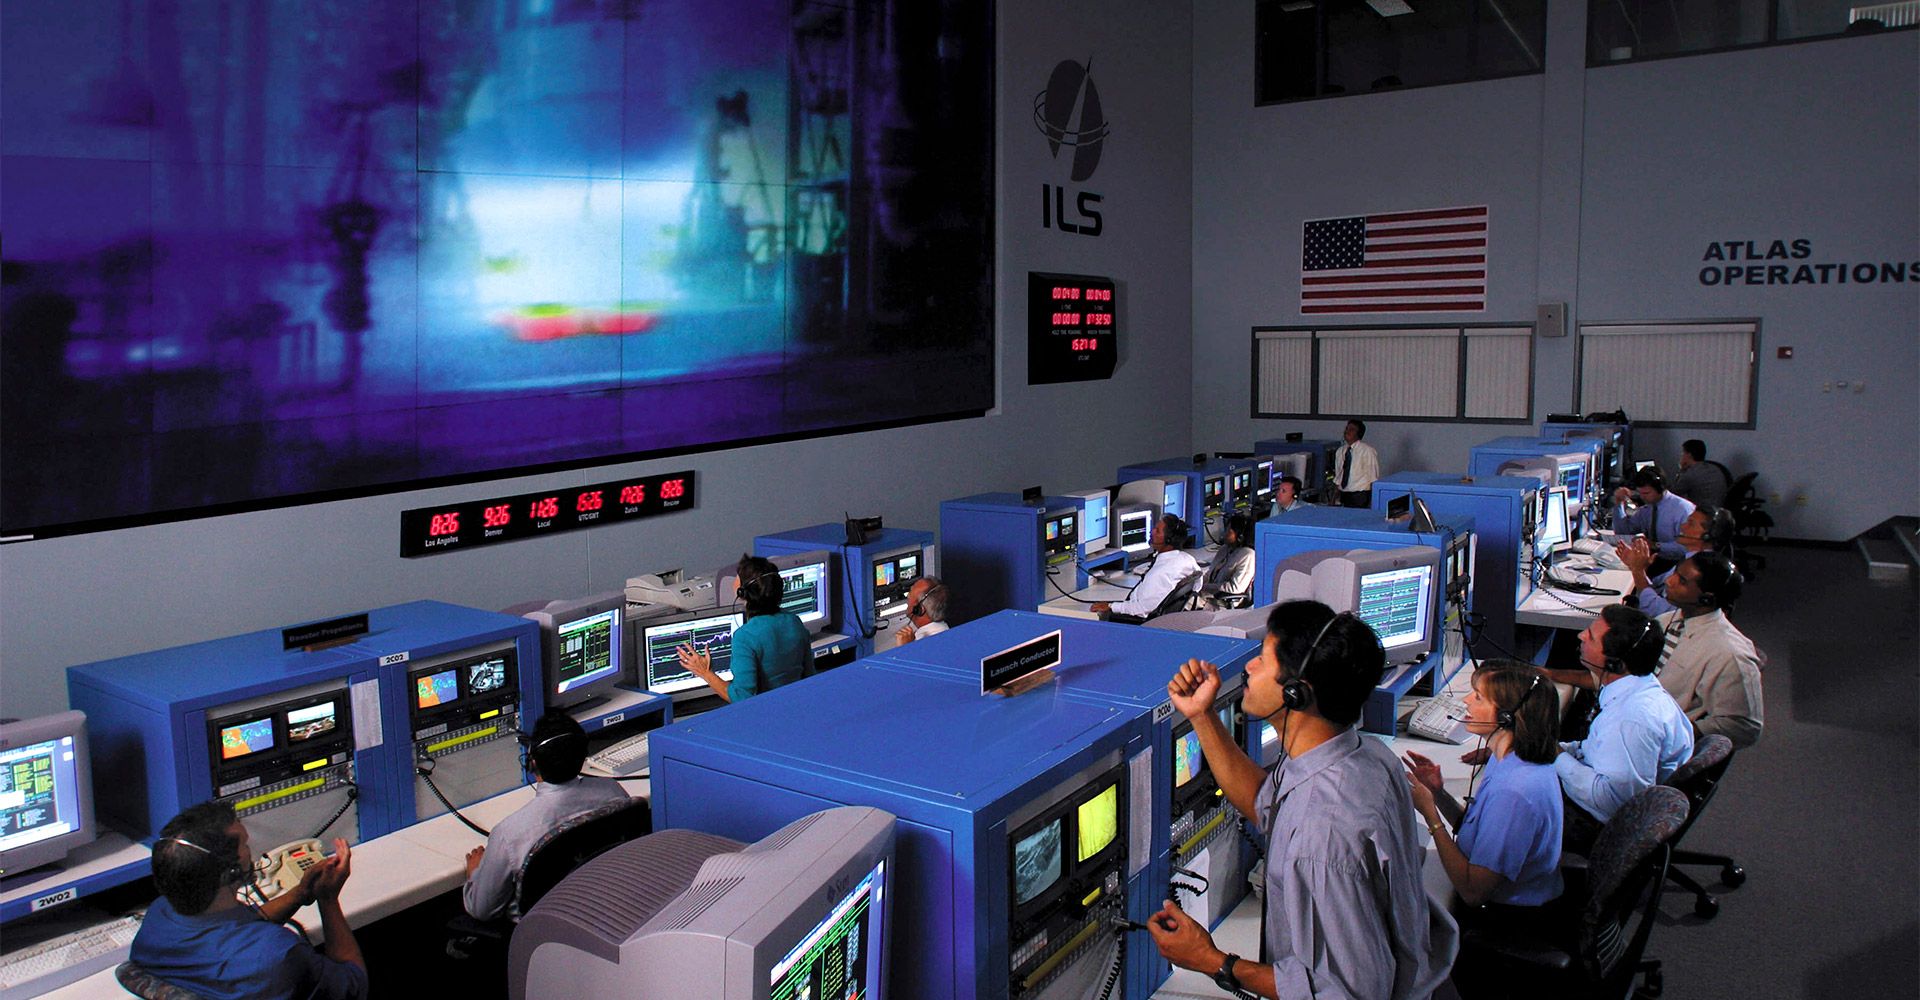 Space operations center.